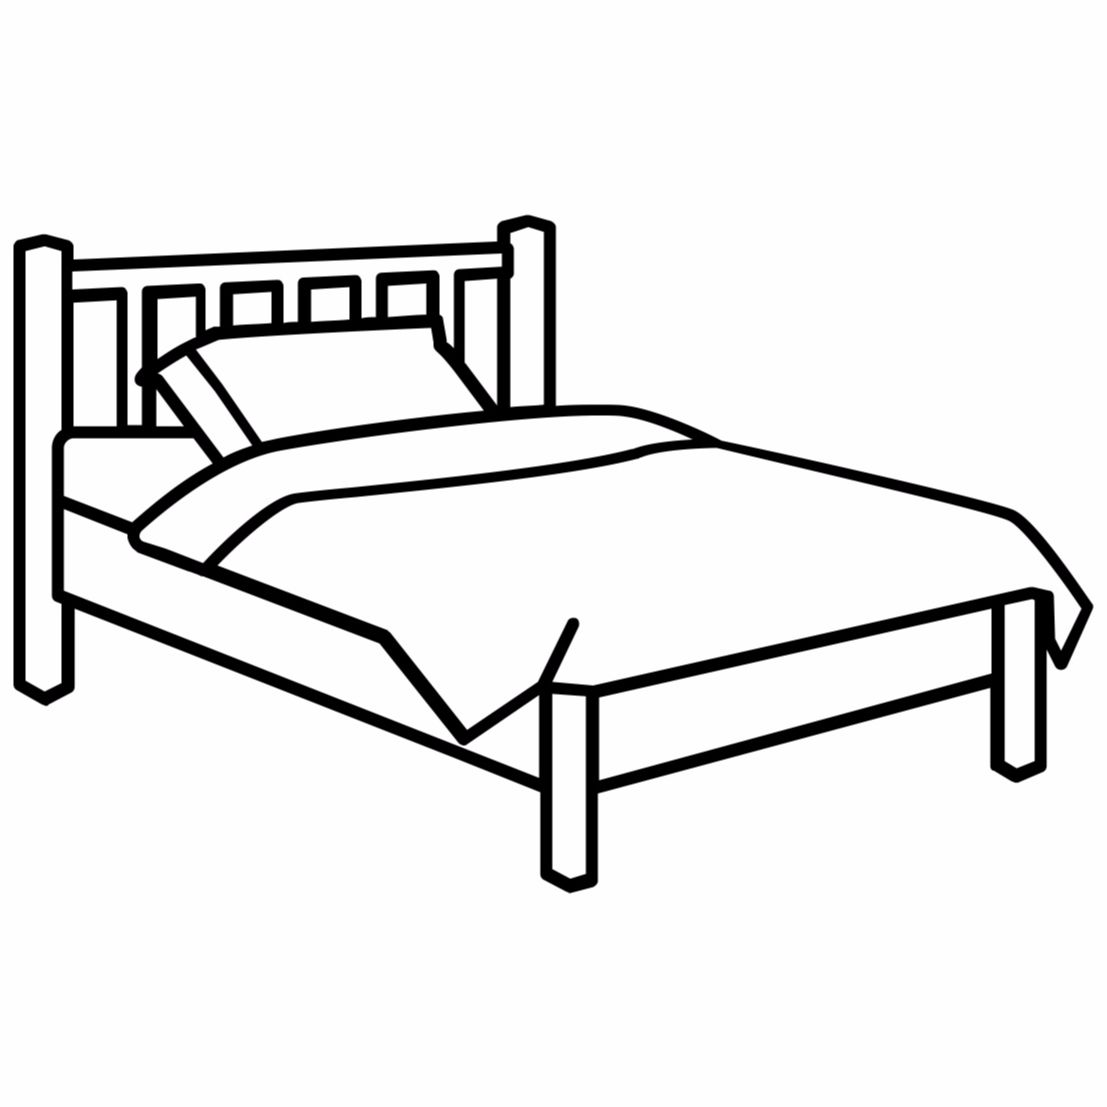 bed coloring pages bed coloring pages to download and print for free bed coloring pages